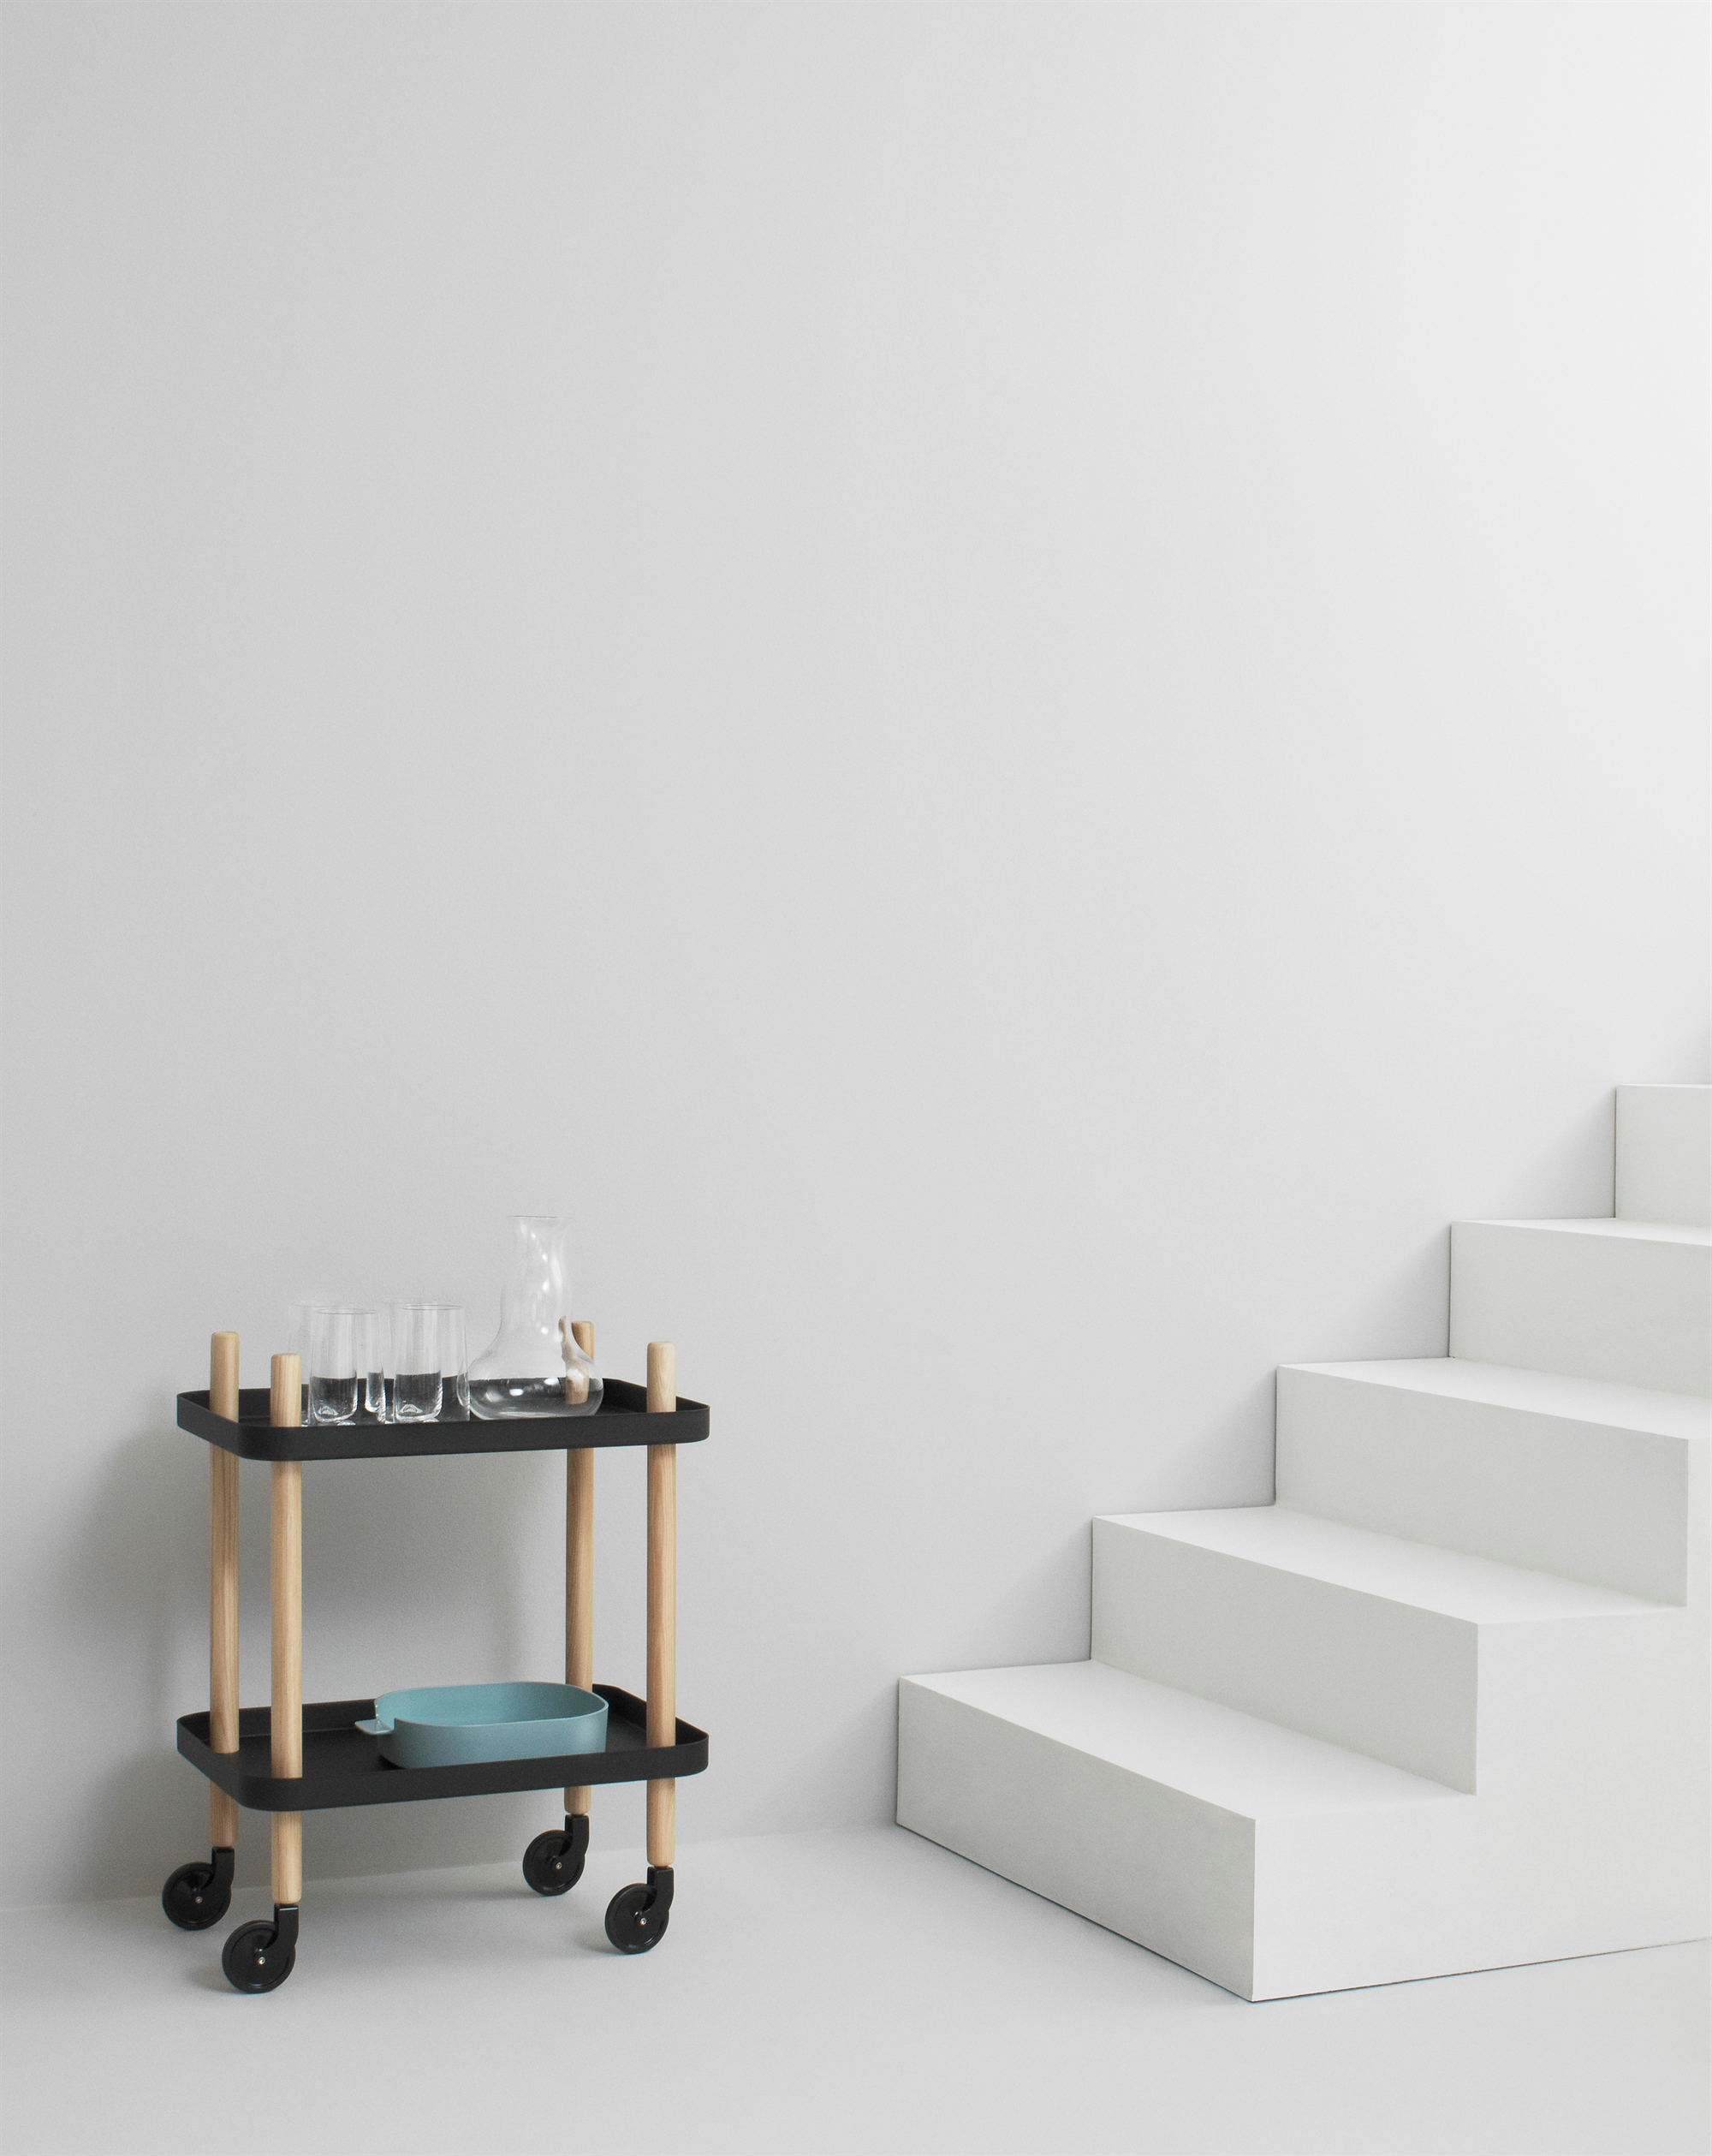 Normann Copenhagen, Block table